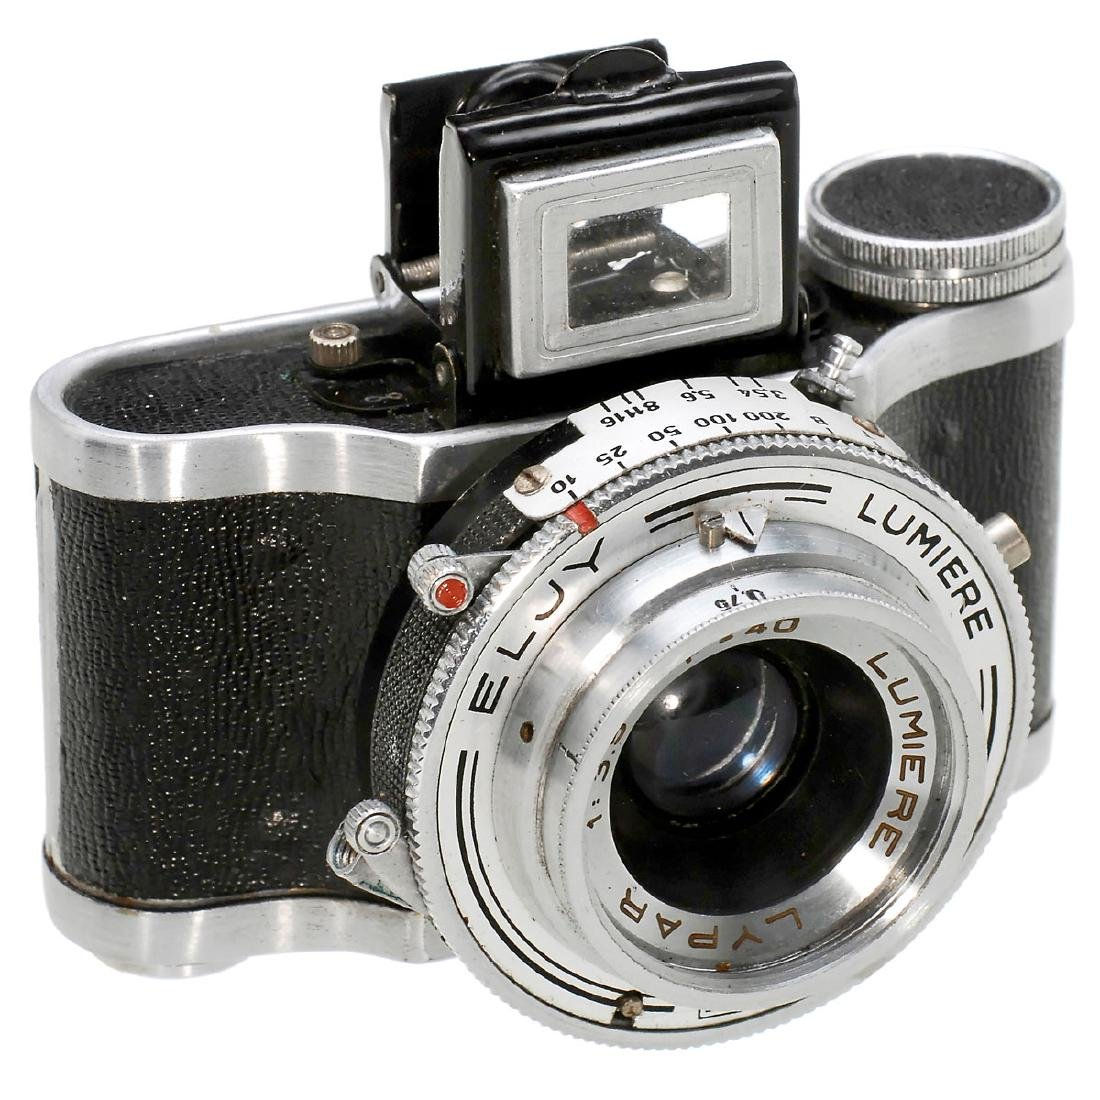 Eljy Subminiature Camera, 1950